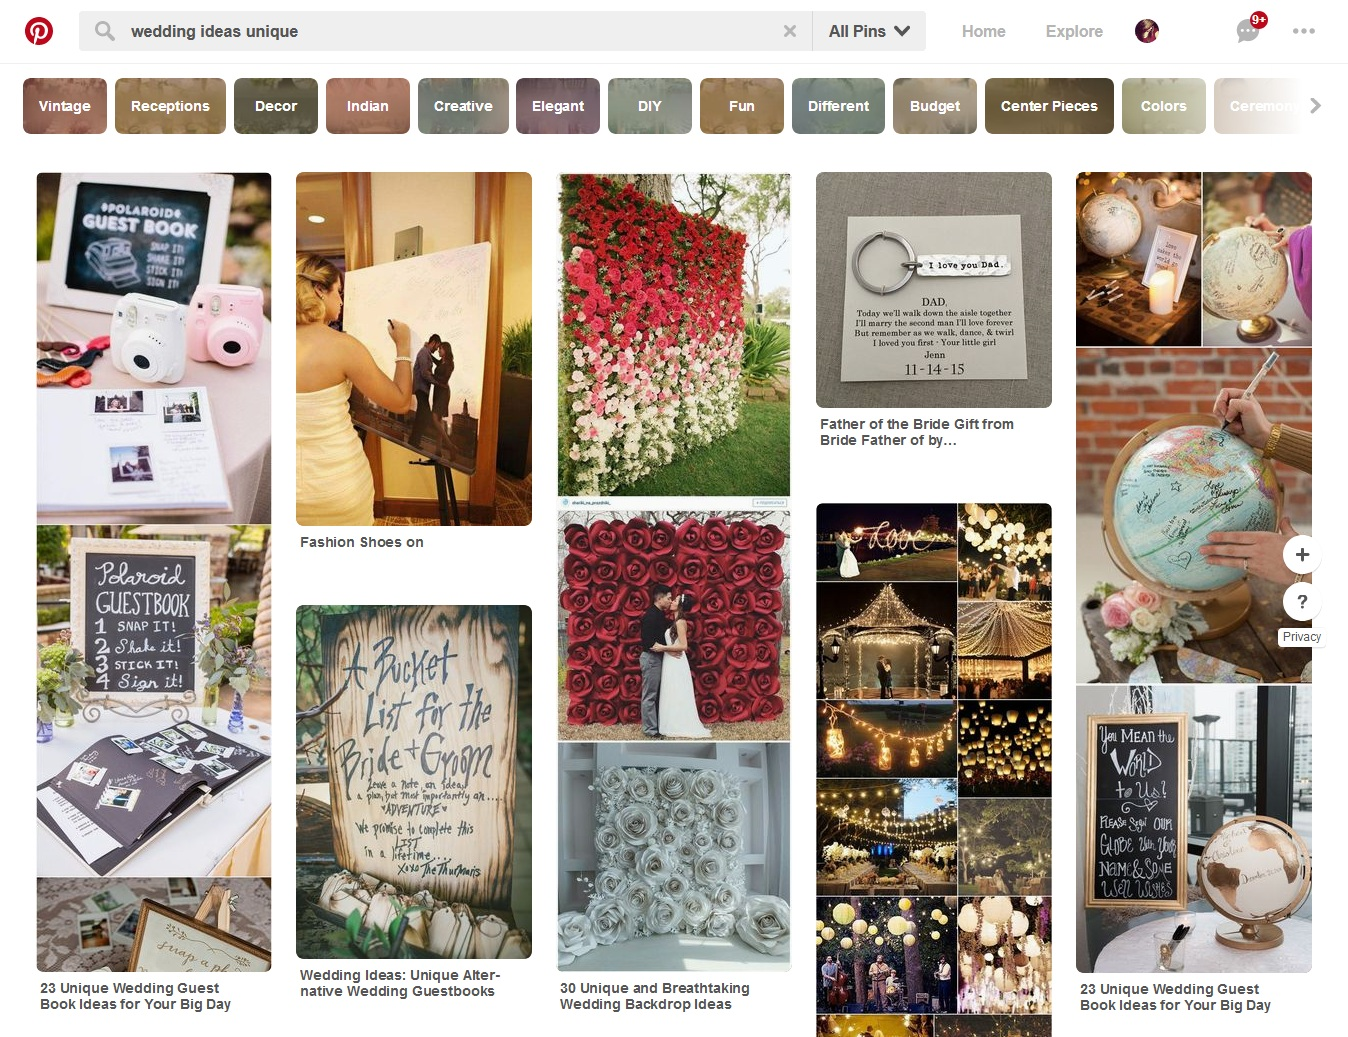 Wedding ideas on pinterest